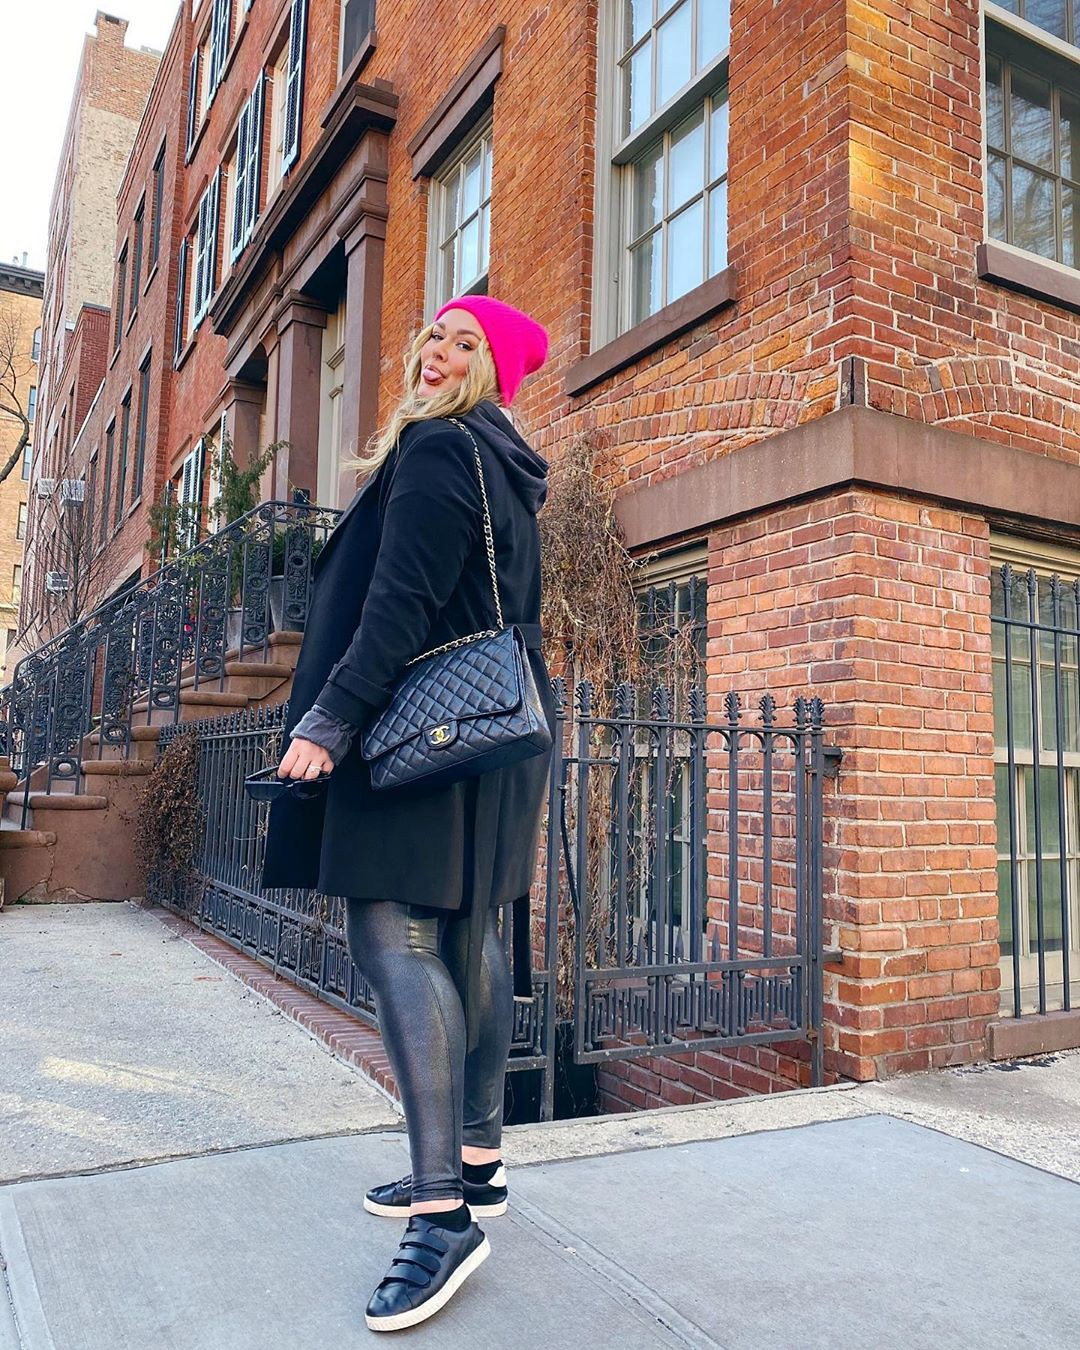 pink outfit pinterest with jacket, beanie, jeans